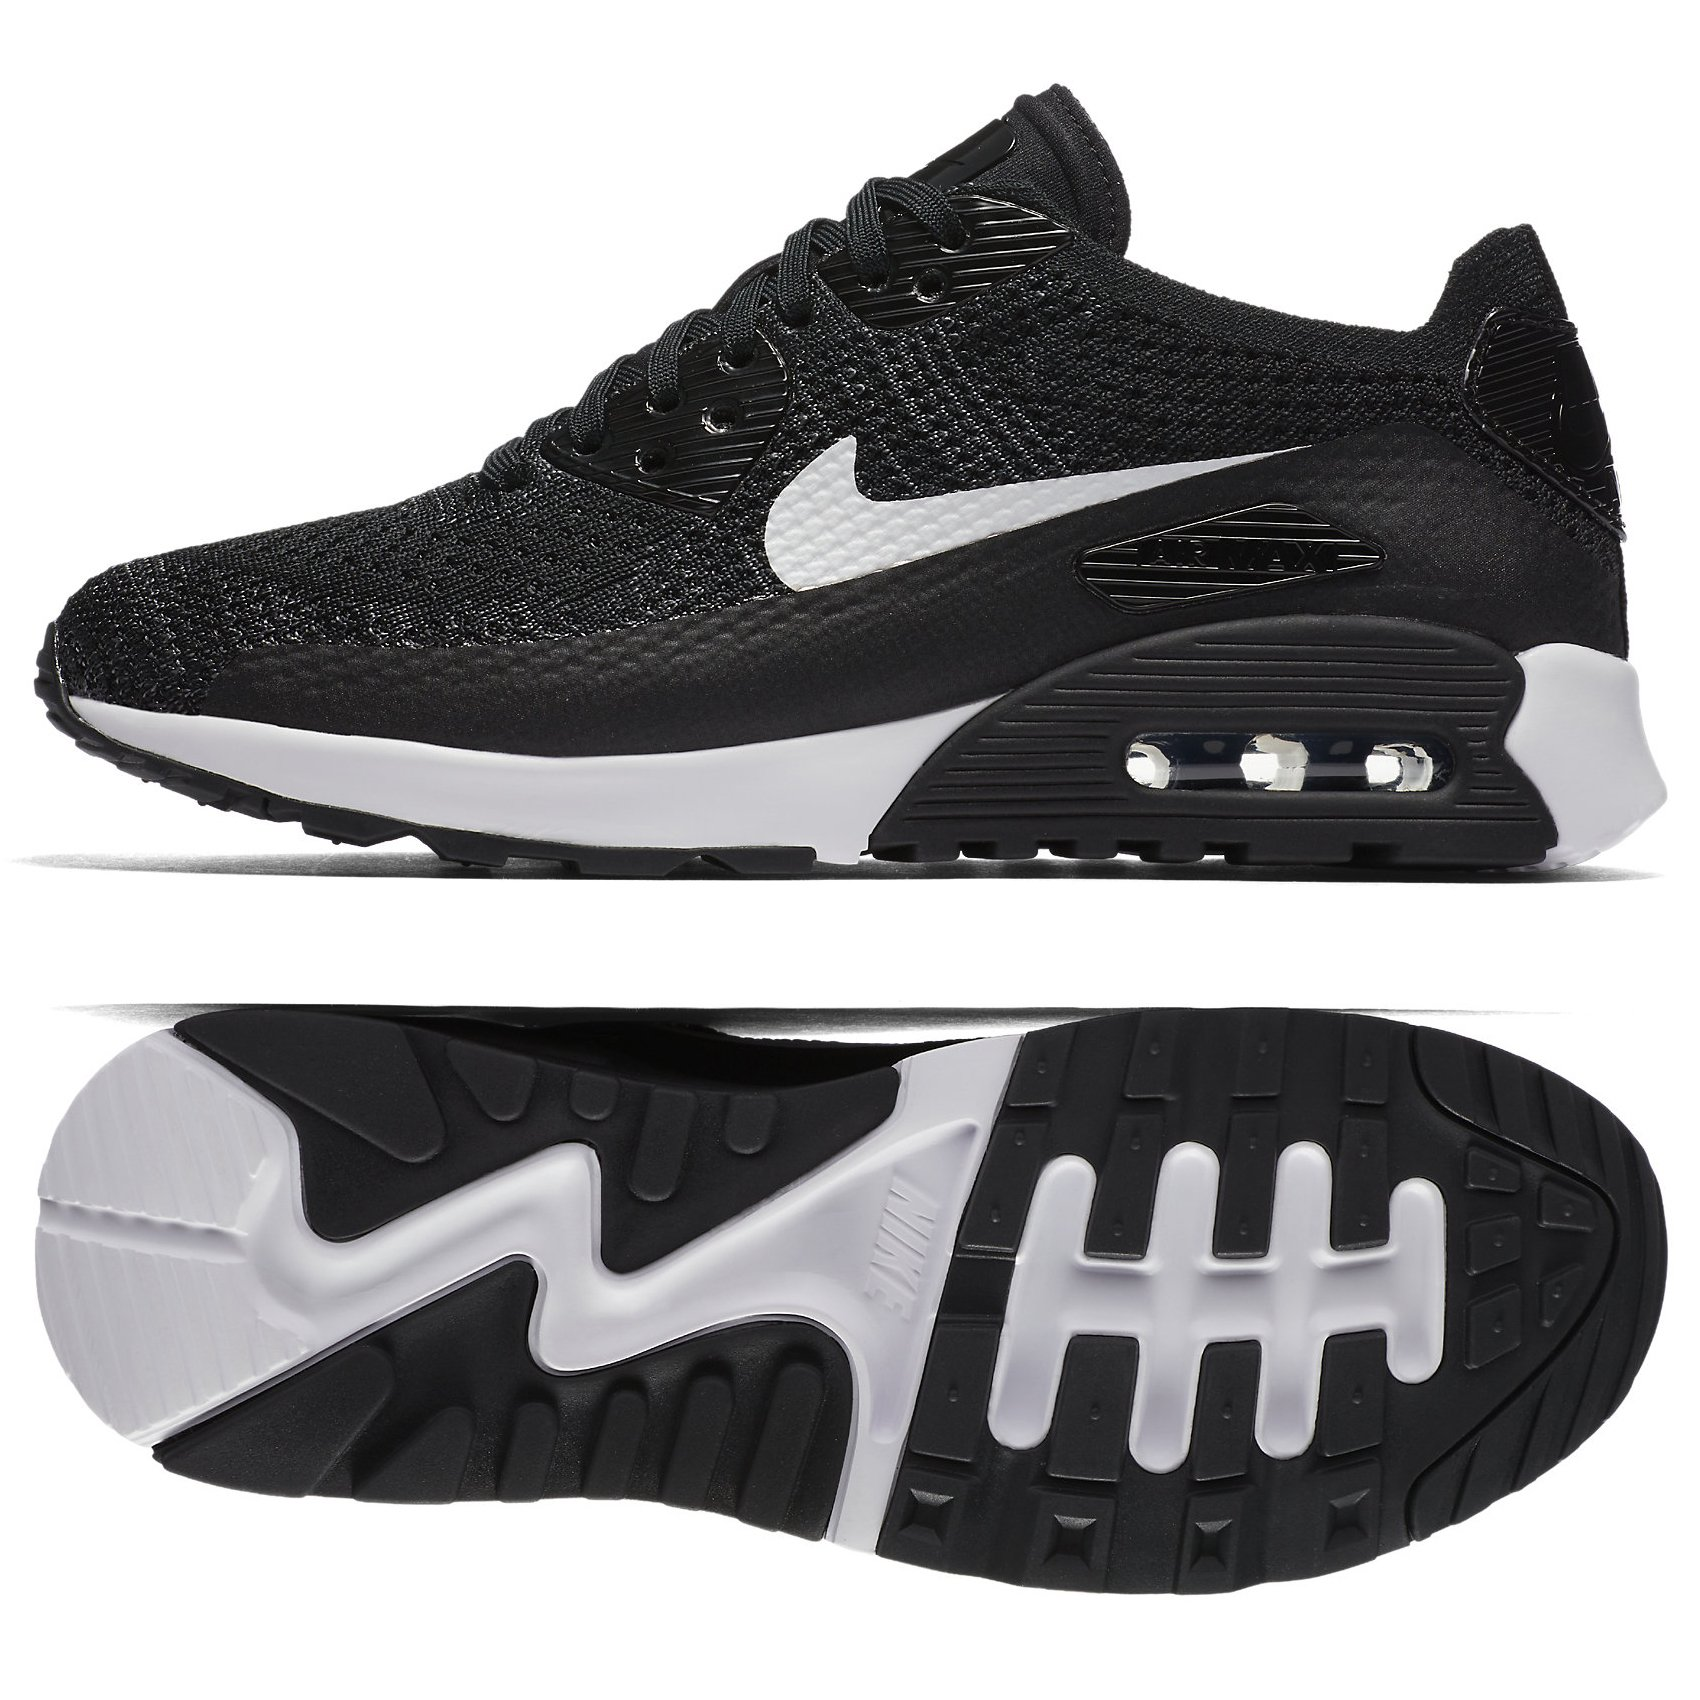 7933a4414a86d Galleon - Nike Womens Air Max 90 Ultra 2.0 Flyknit Running Shoe (7.5 M US